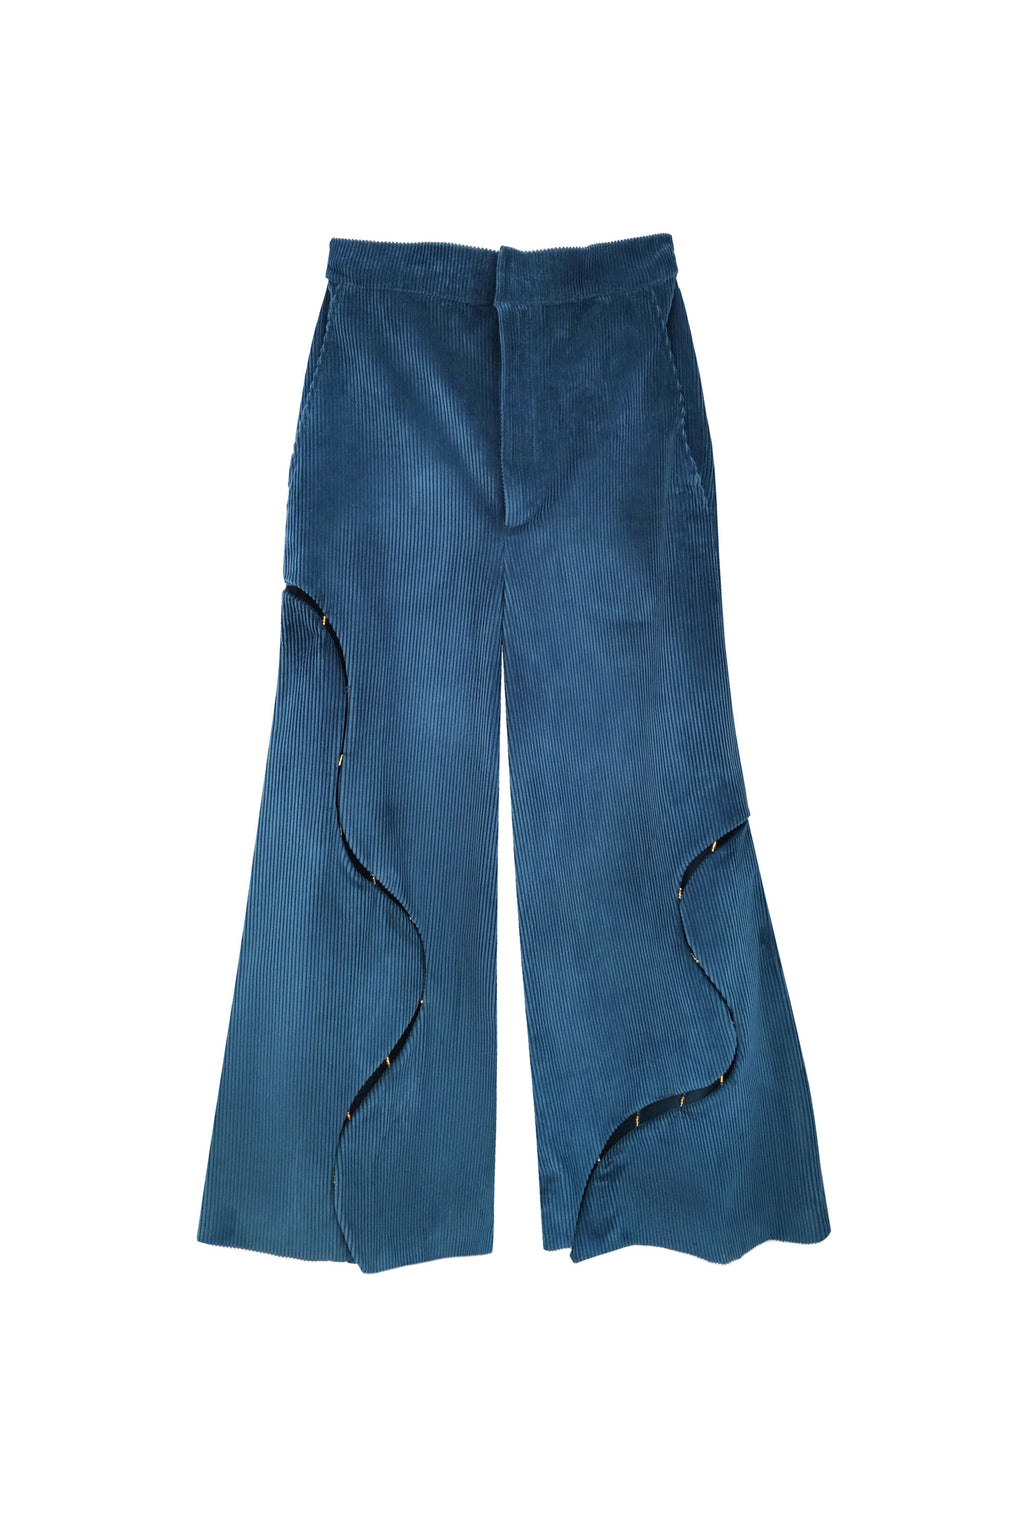 Corduroy Cut Pants